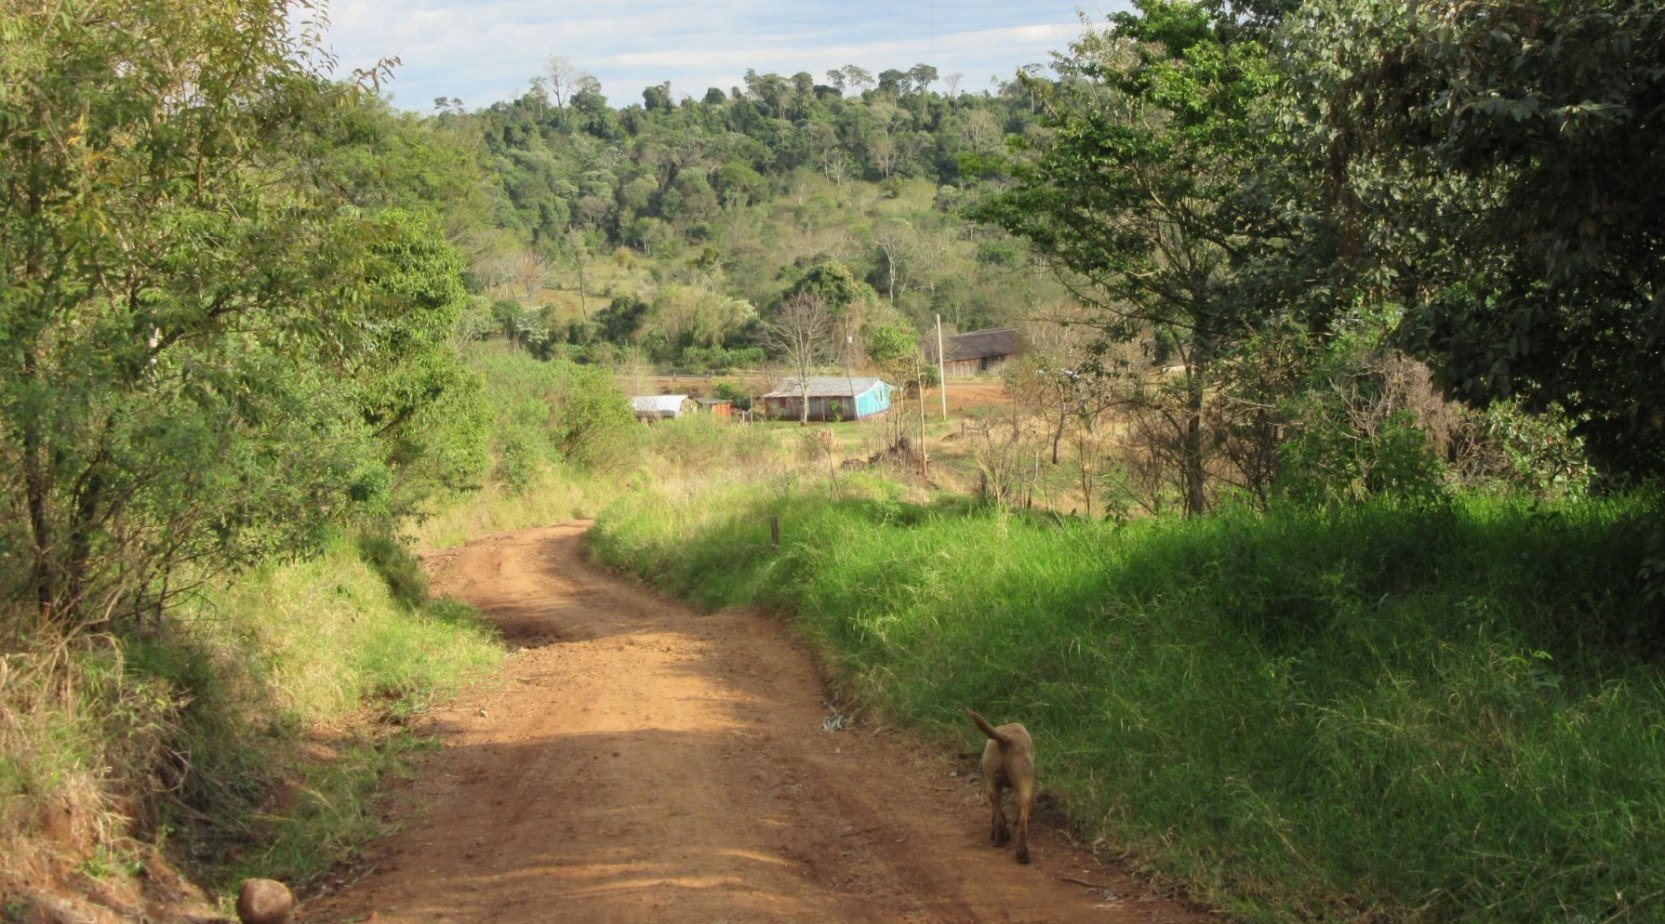 Train working area of native forest, pastures, and a small farm in central Misiones, Argentina